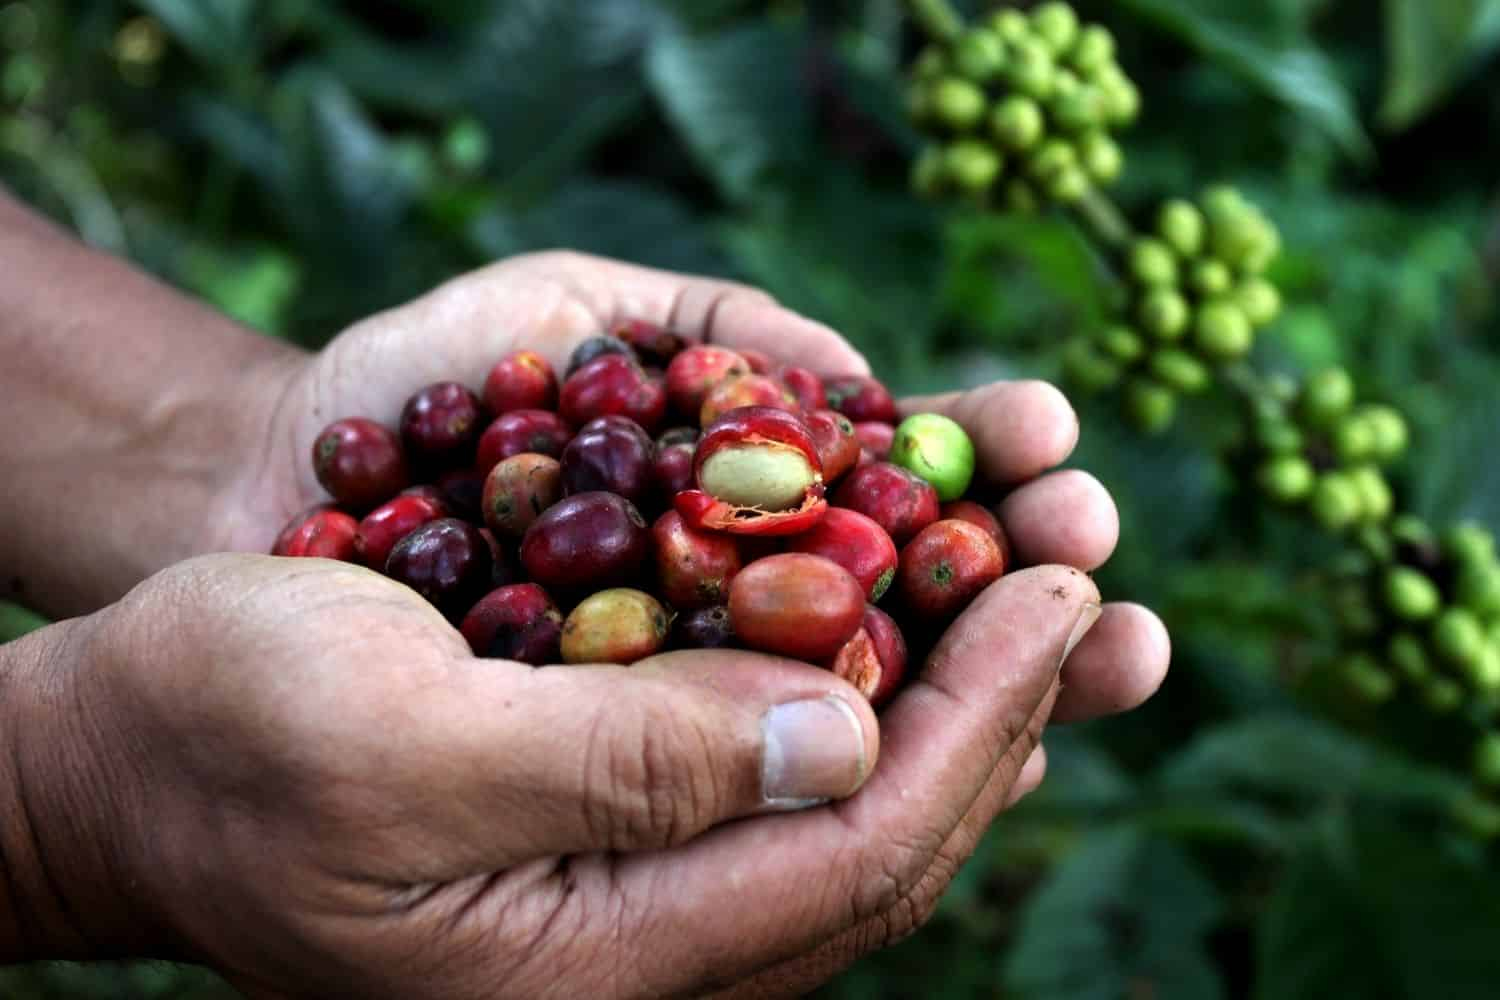 man holding coffee cherries in his palm.